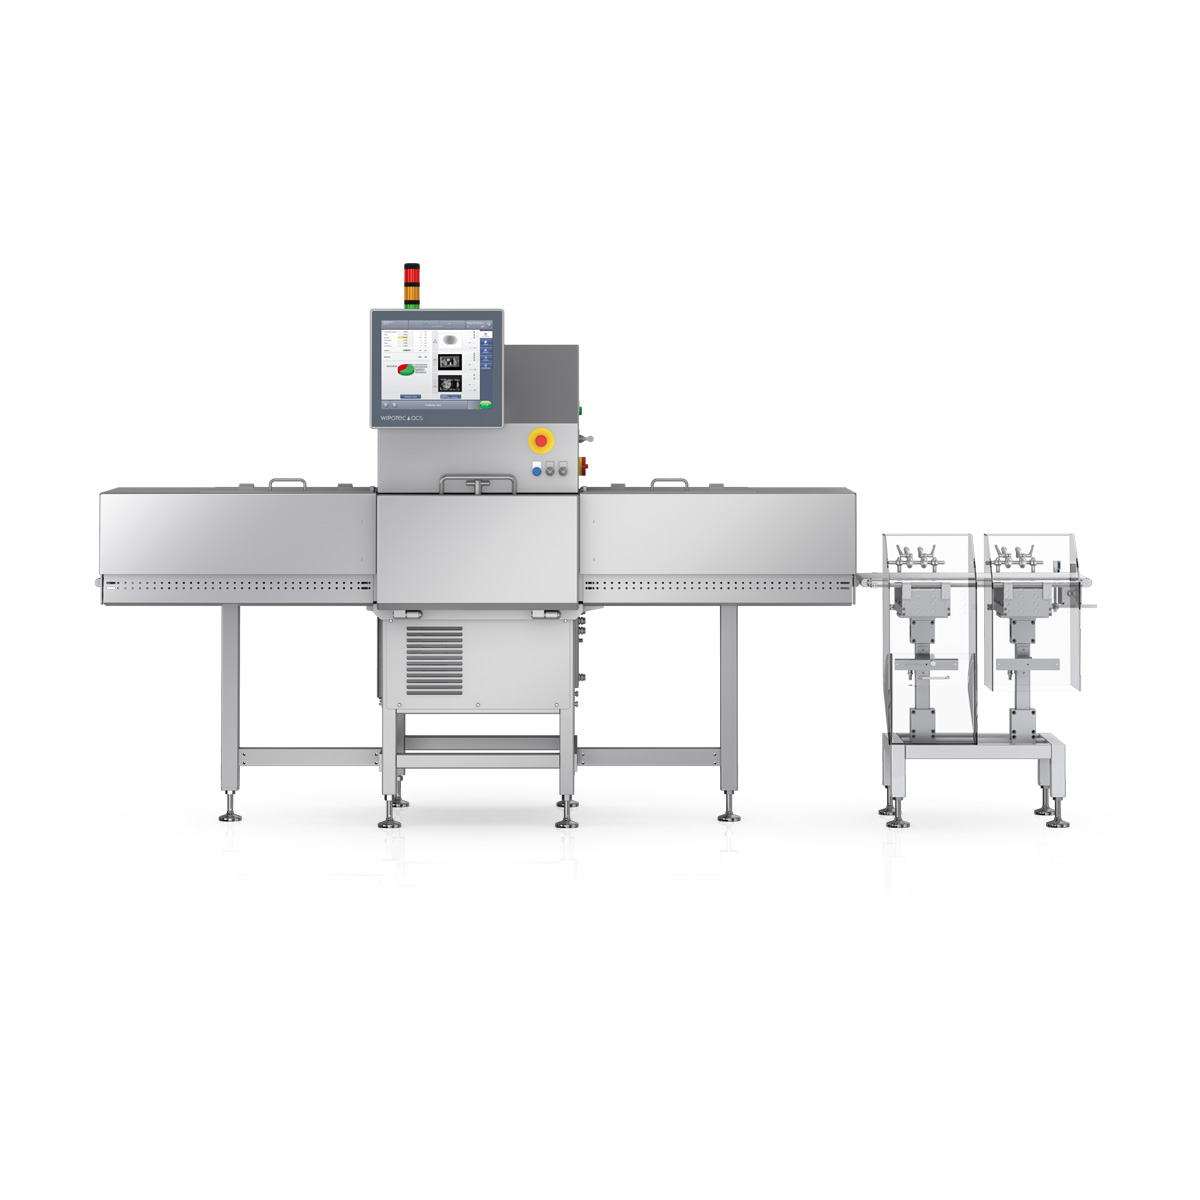 x-ray-inspection-vision-inspection-system-sc-v-front-view